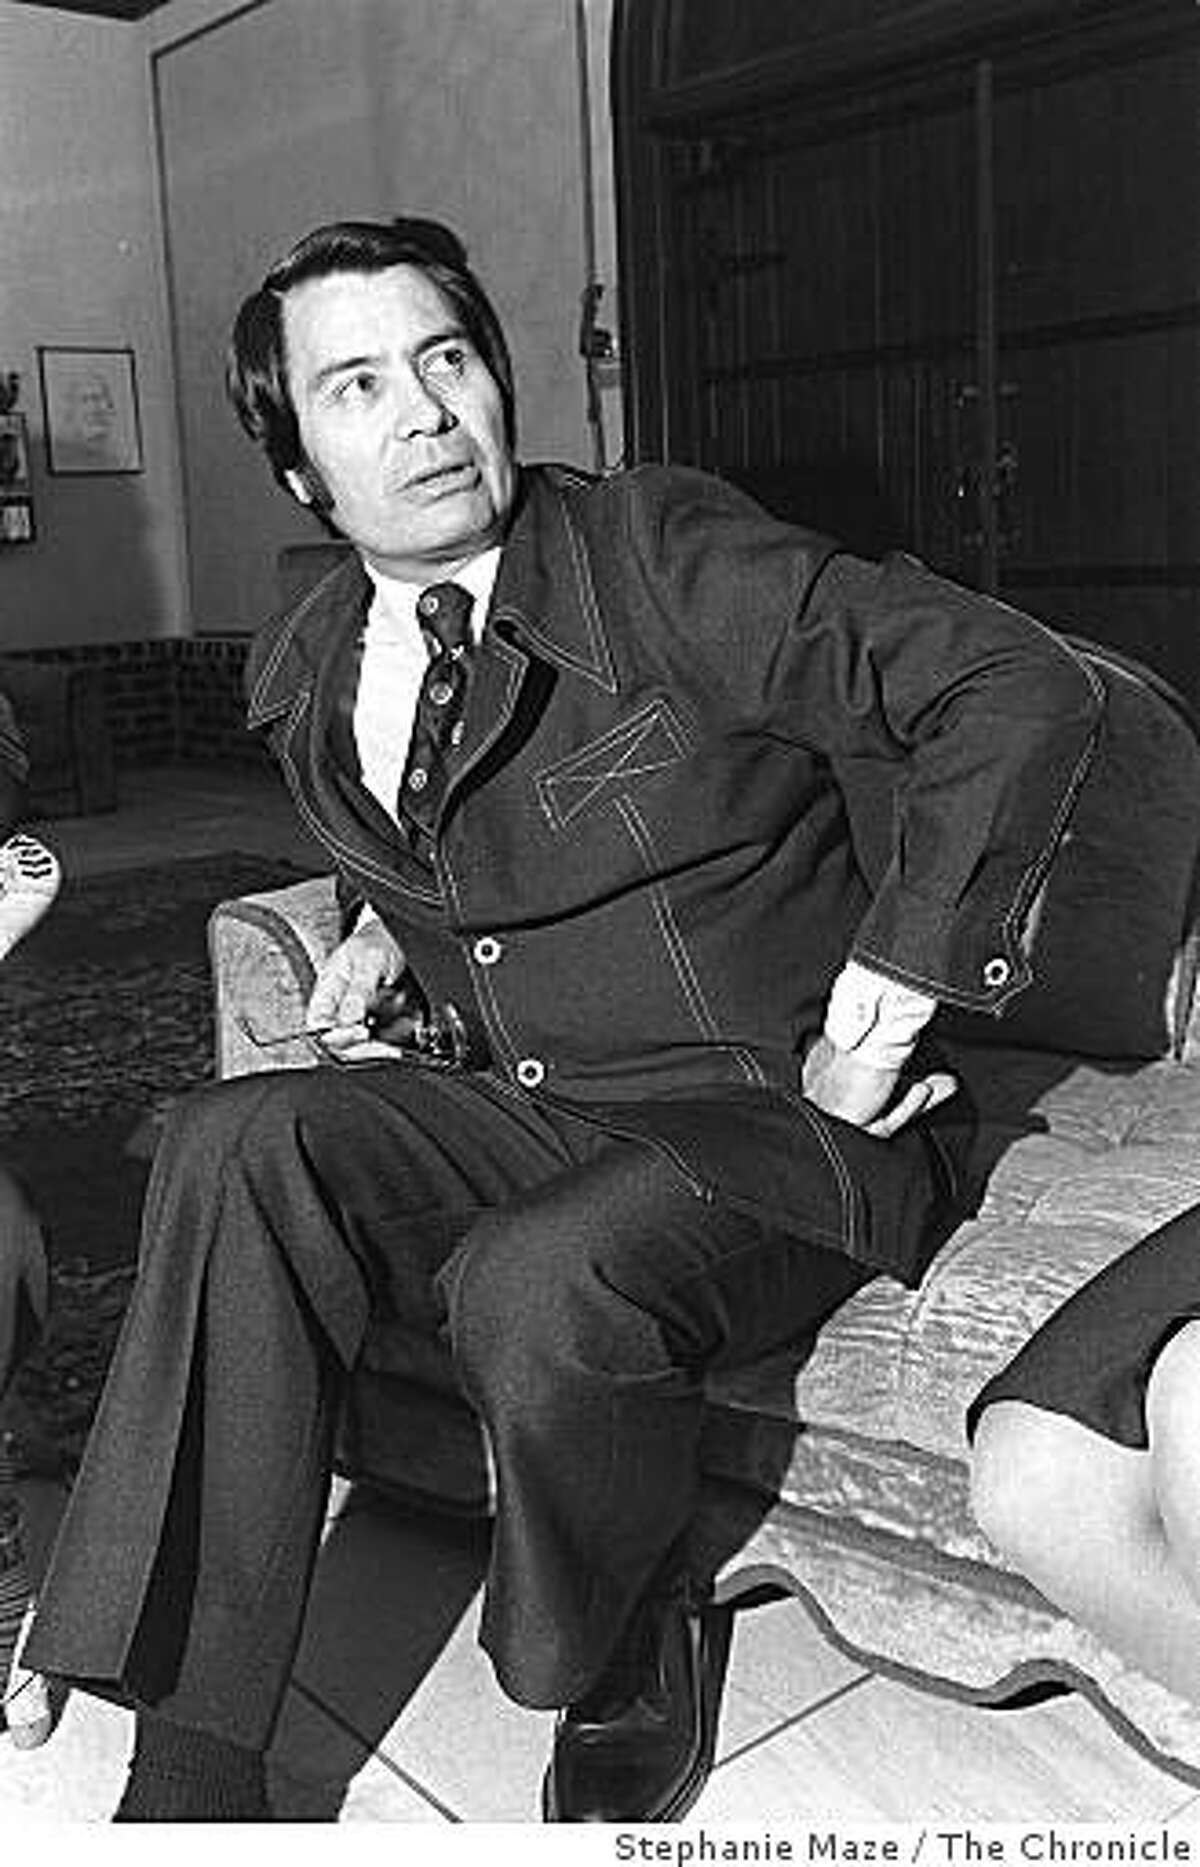 Rev. Jim Jones, of People's Temple, during an interview on June 2, 1976